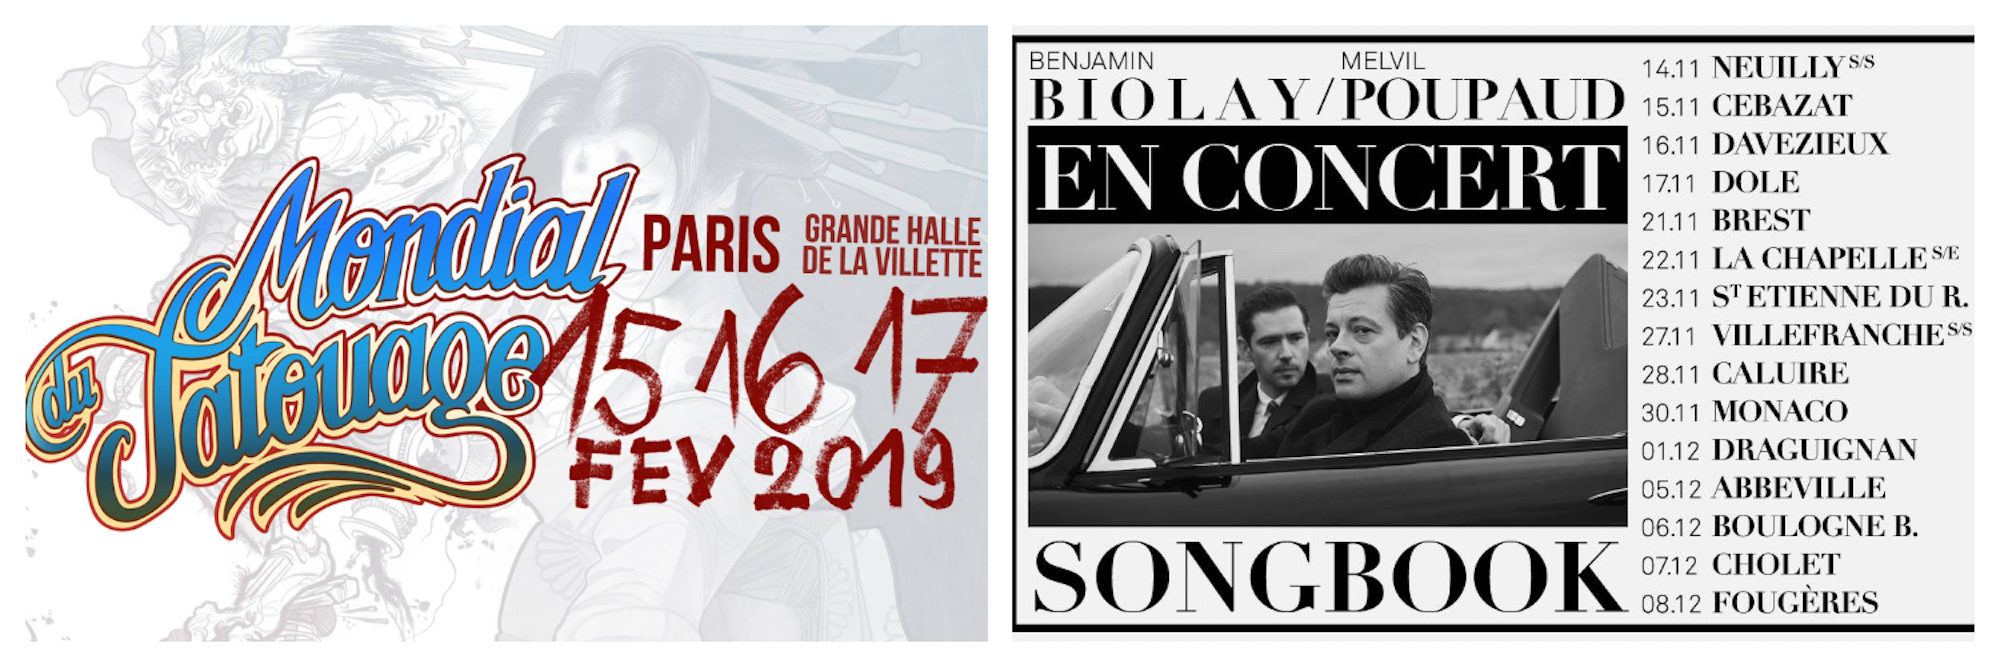 Mondial Tatouage tattoo fair takes places every February in Paris (left). Poster for French singer Benjamin Biolay Music Concert in Paris (right).